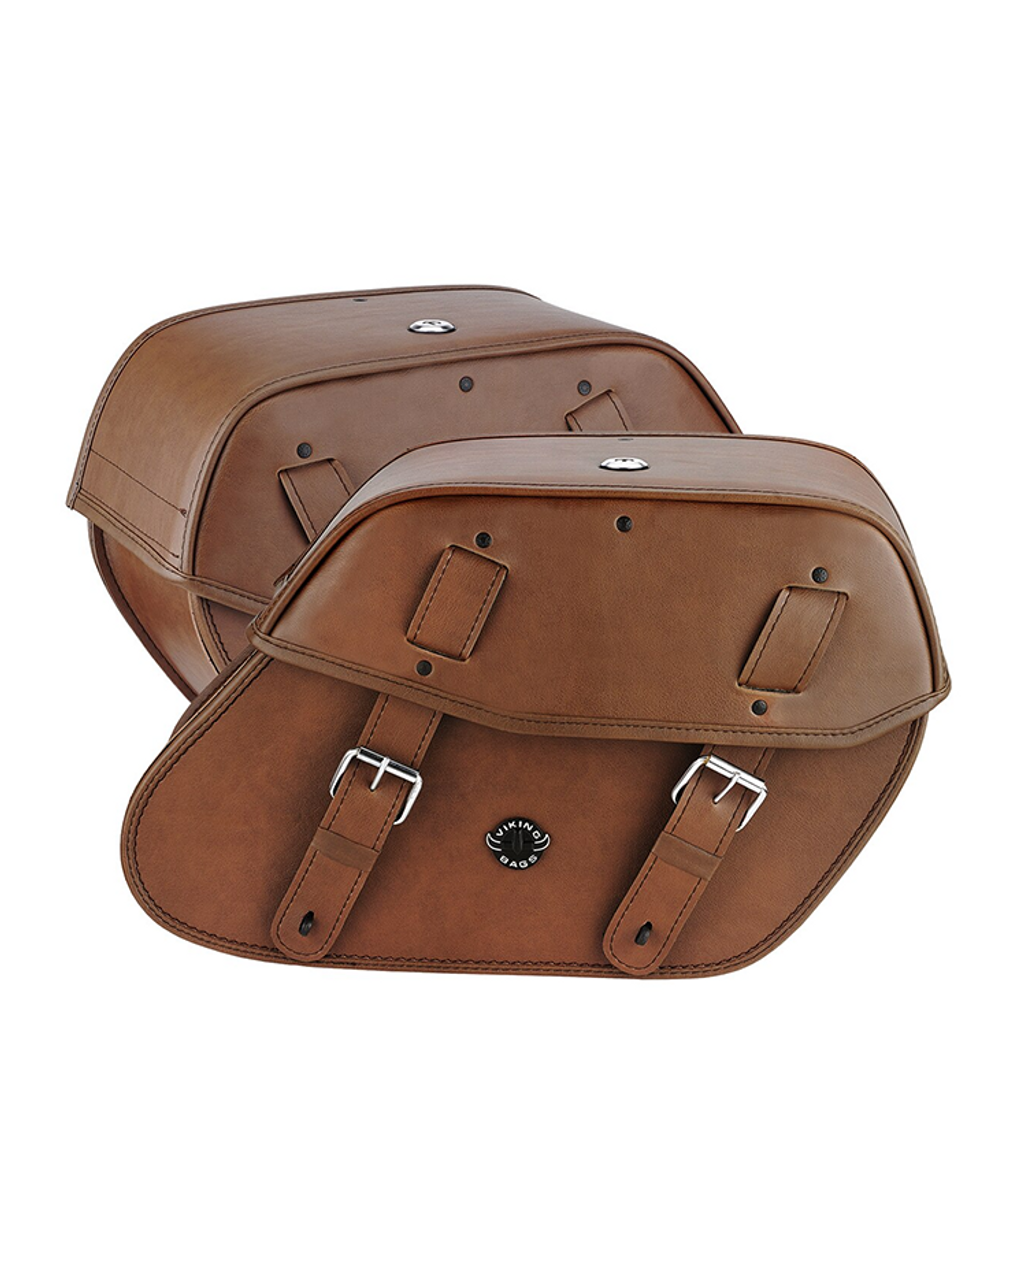 VikingBags Odin Brown Large Double Strap Leather Motorcycle Saddlebags For Harley Softail Breakout 114 FXBRS Both Bags View